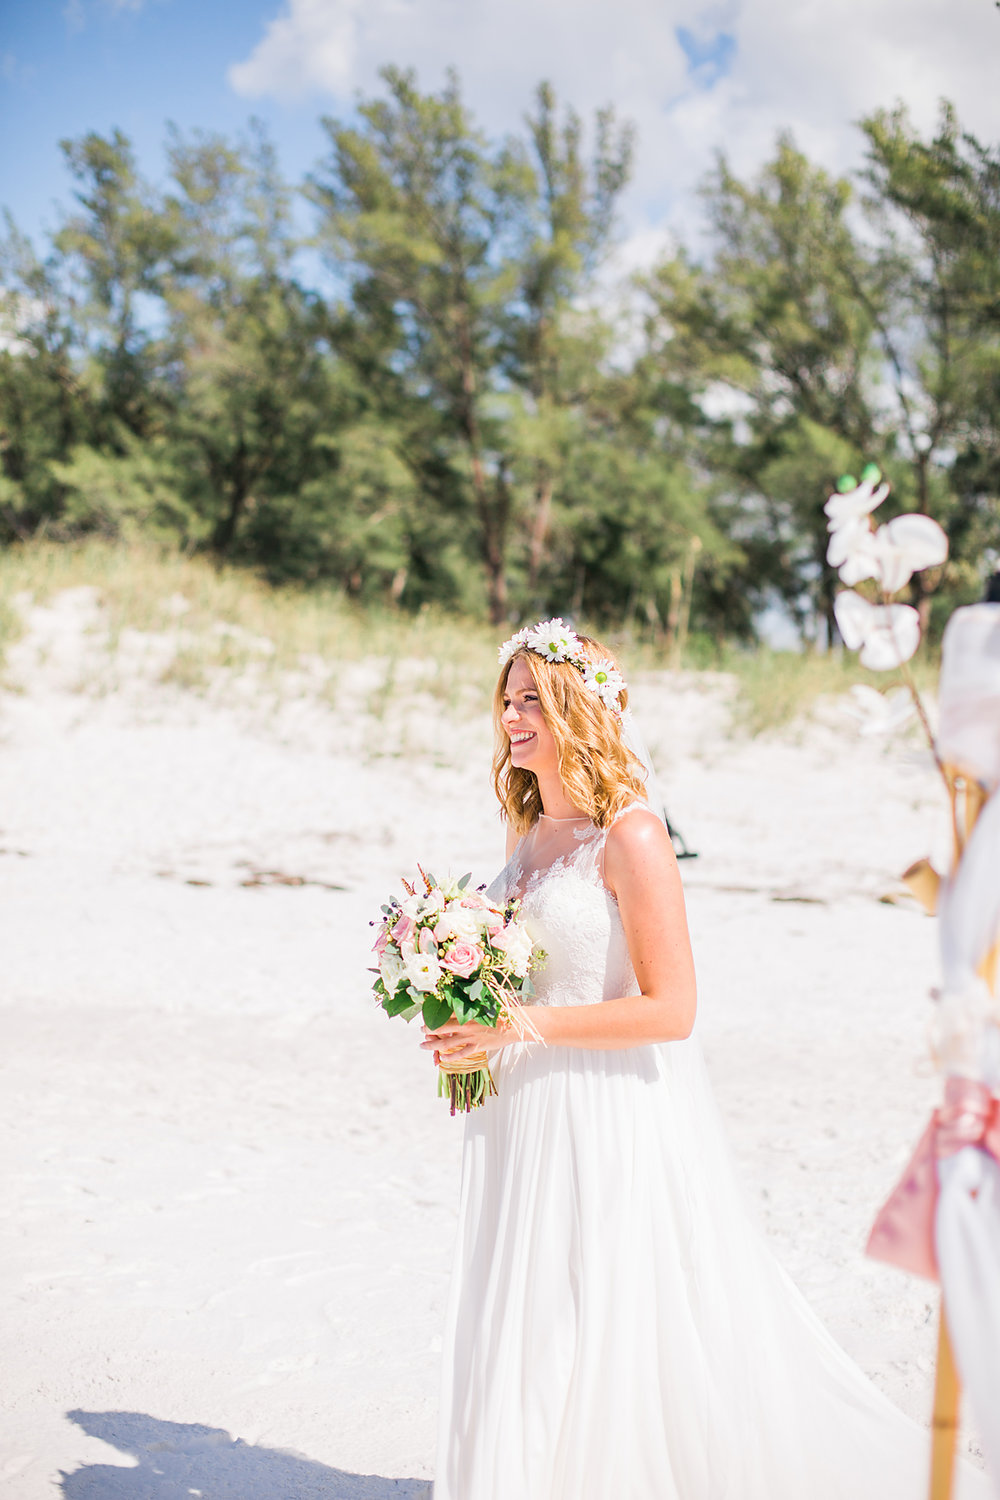 Luise + Daniel - Anna Maria Island Wedding Photography - Emily & Co 4.jpg